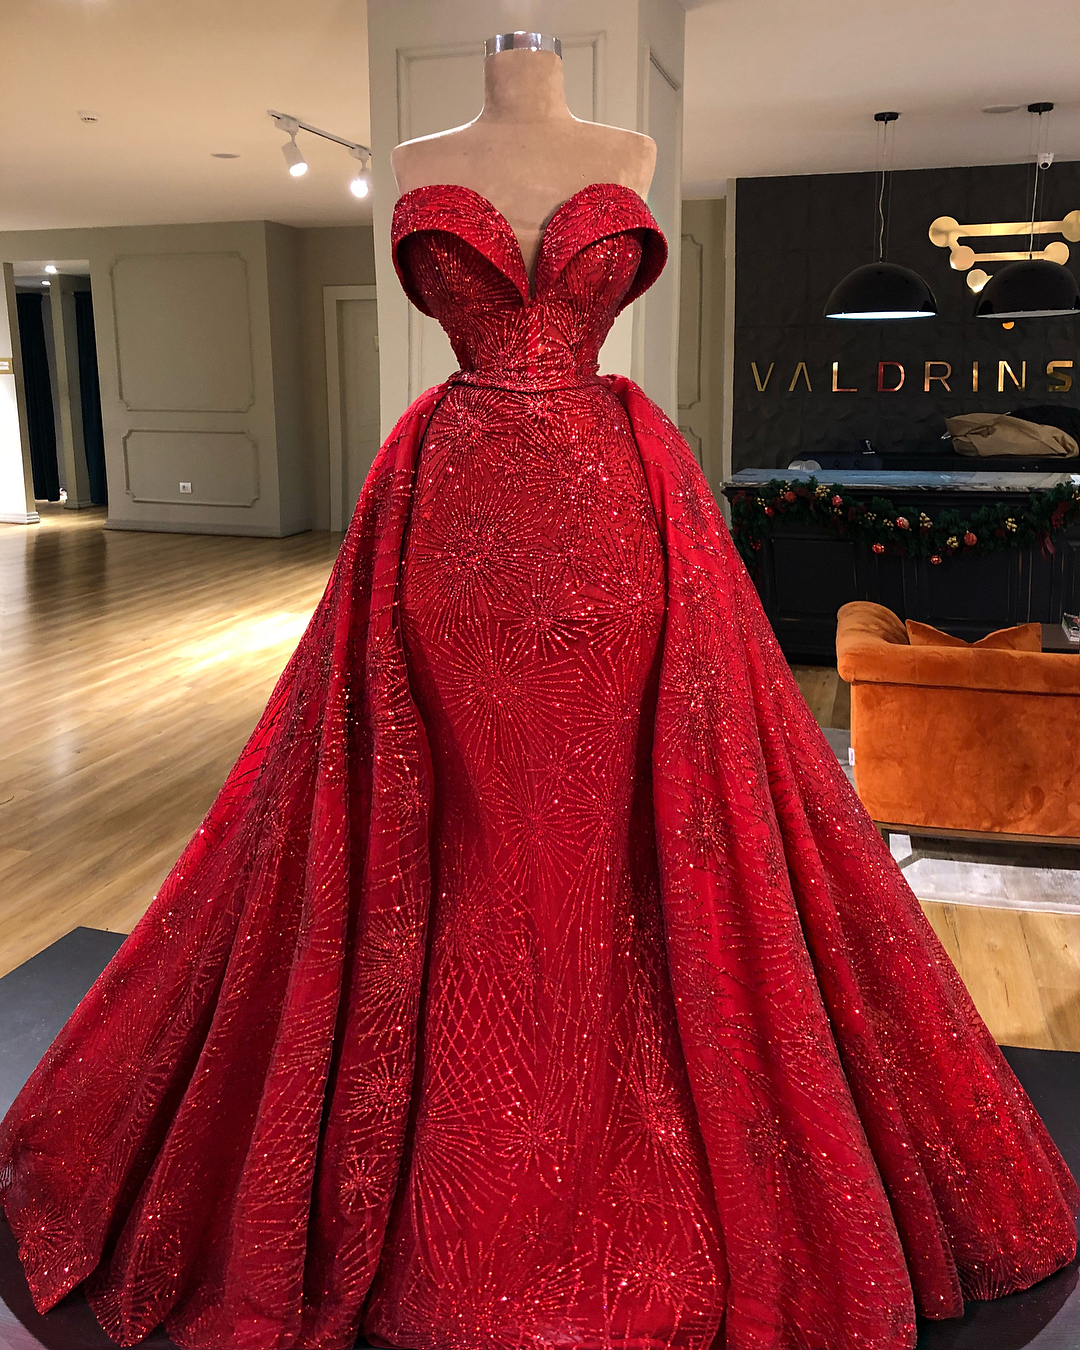 Beautiful Red And White Wedding Dress: THE VALDRIN SAHITI's RED CHRISTMAS GOWNS THAT BROKE